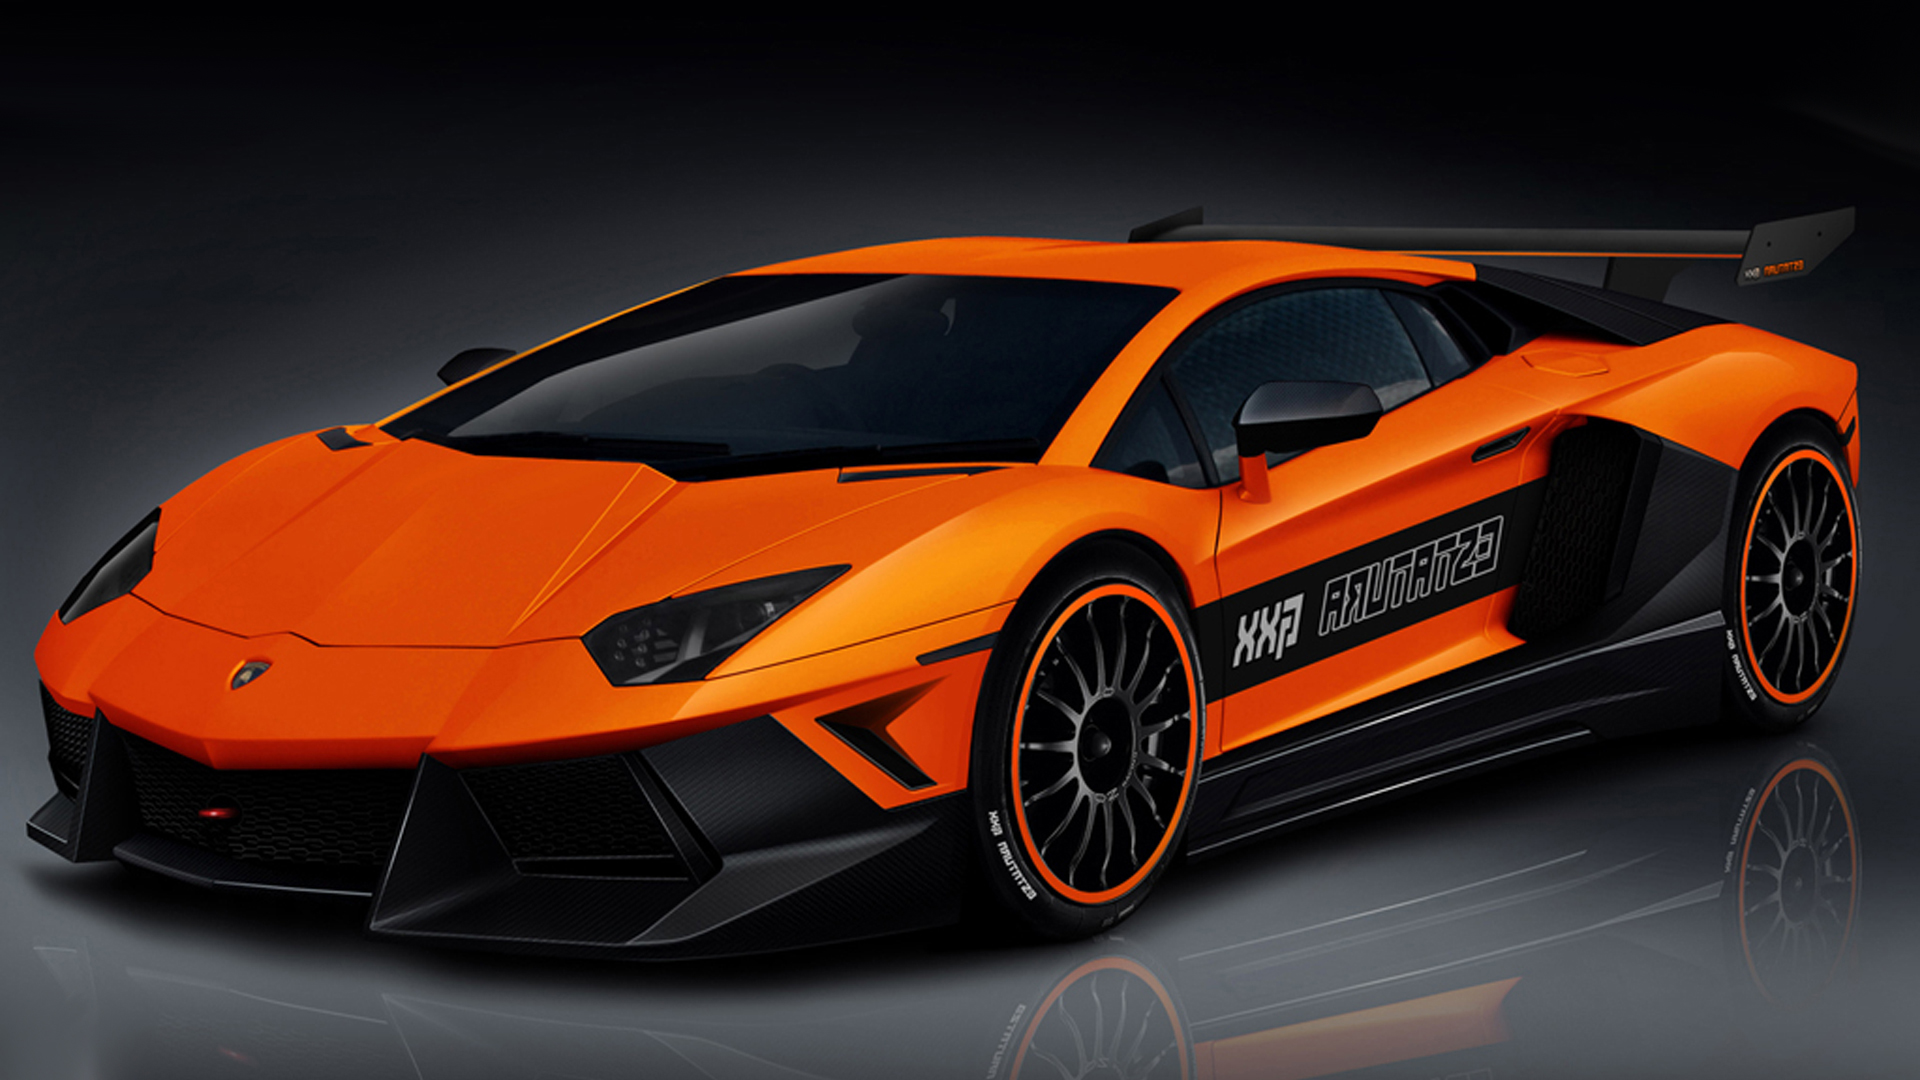 Lamborghini Aventador Fiche Technique Prix Performances HD Wallpapers Download free images and photos [musssic.tk]